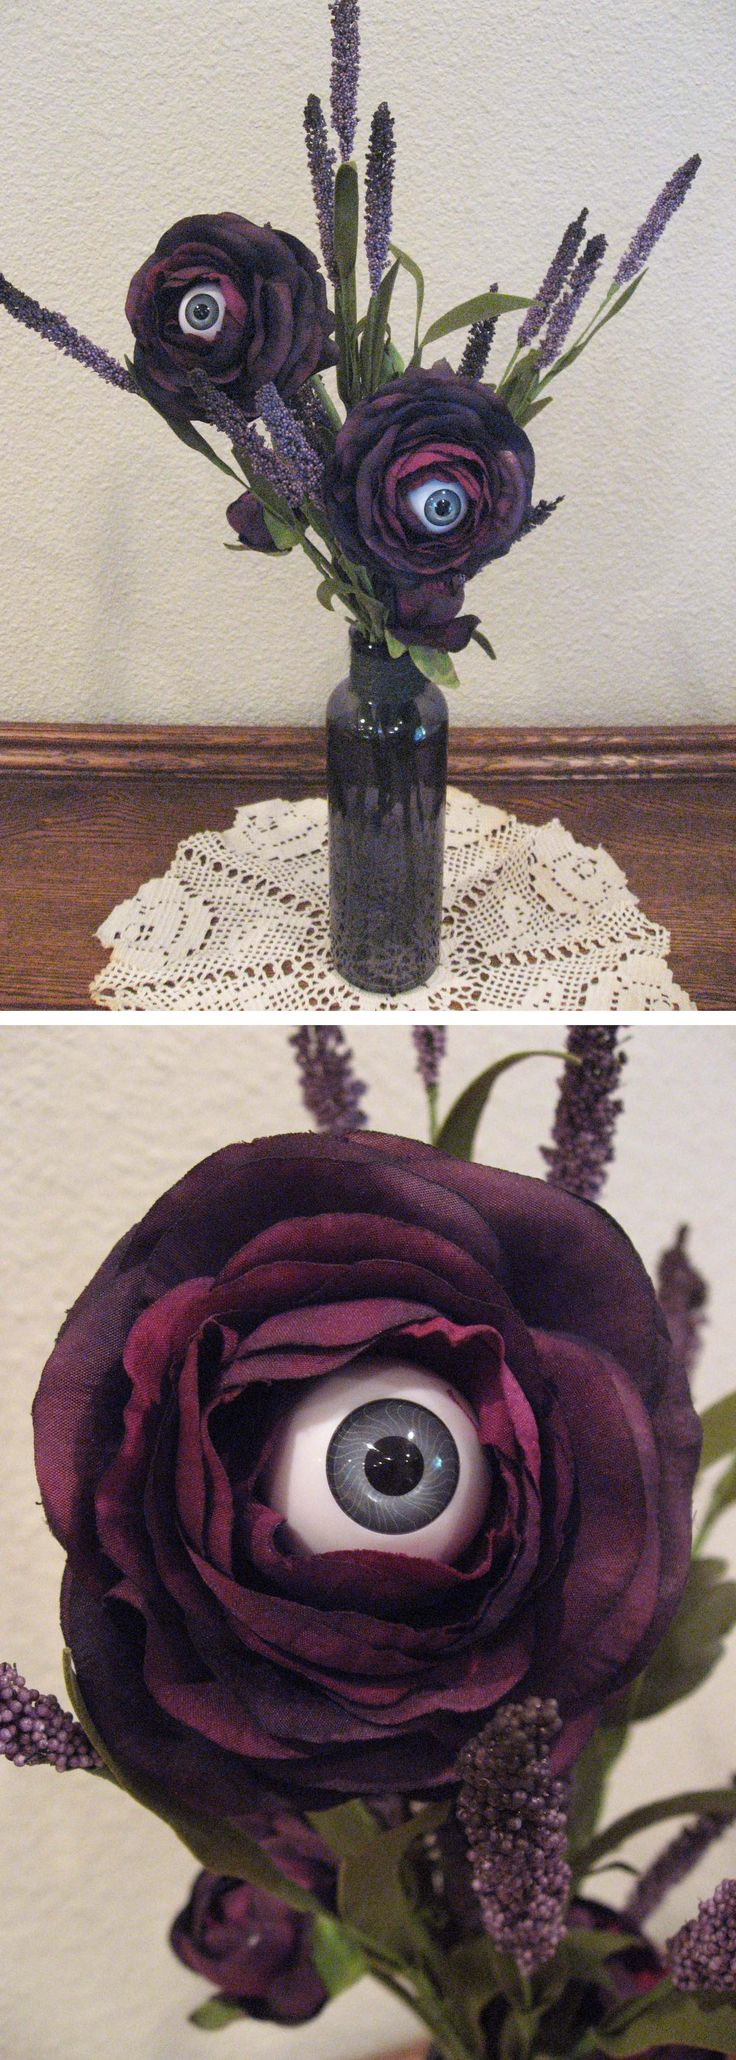 Halloween decor #Creepy #rose #eye / Decoración de Halloween #rosa #ojo